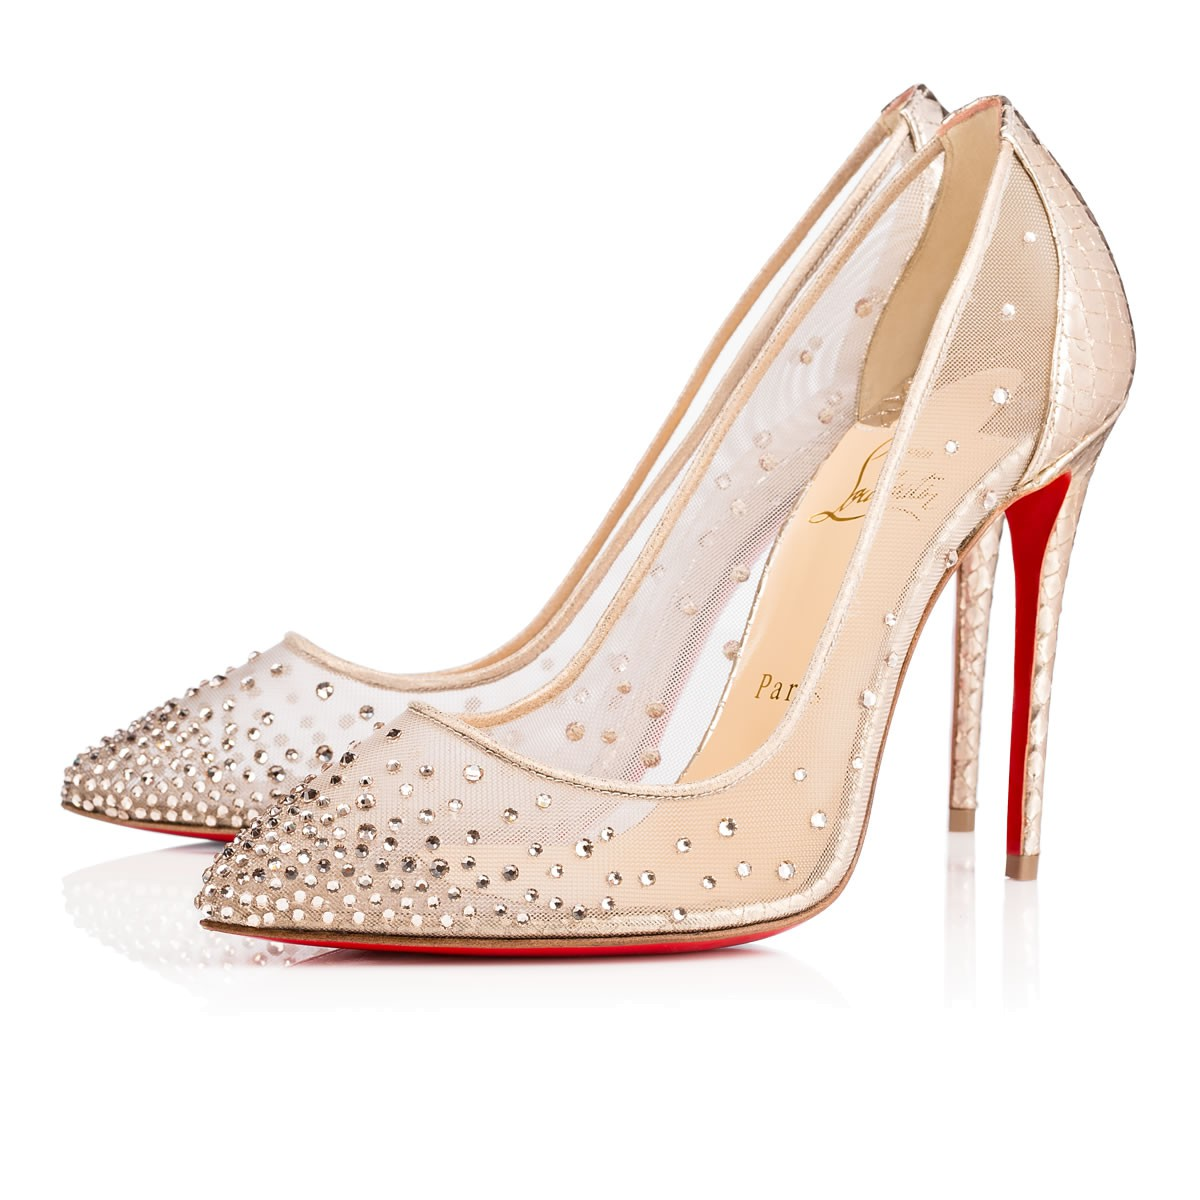 christian louboutin follies strass beige